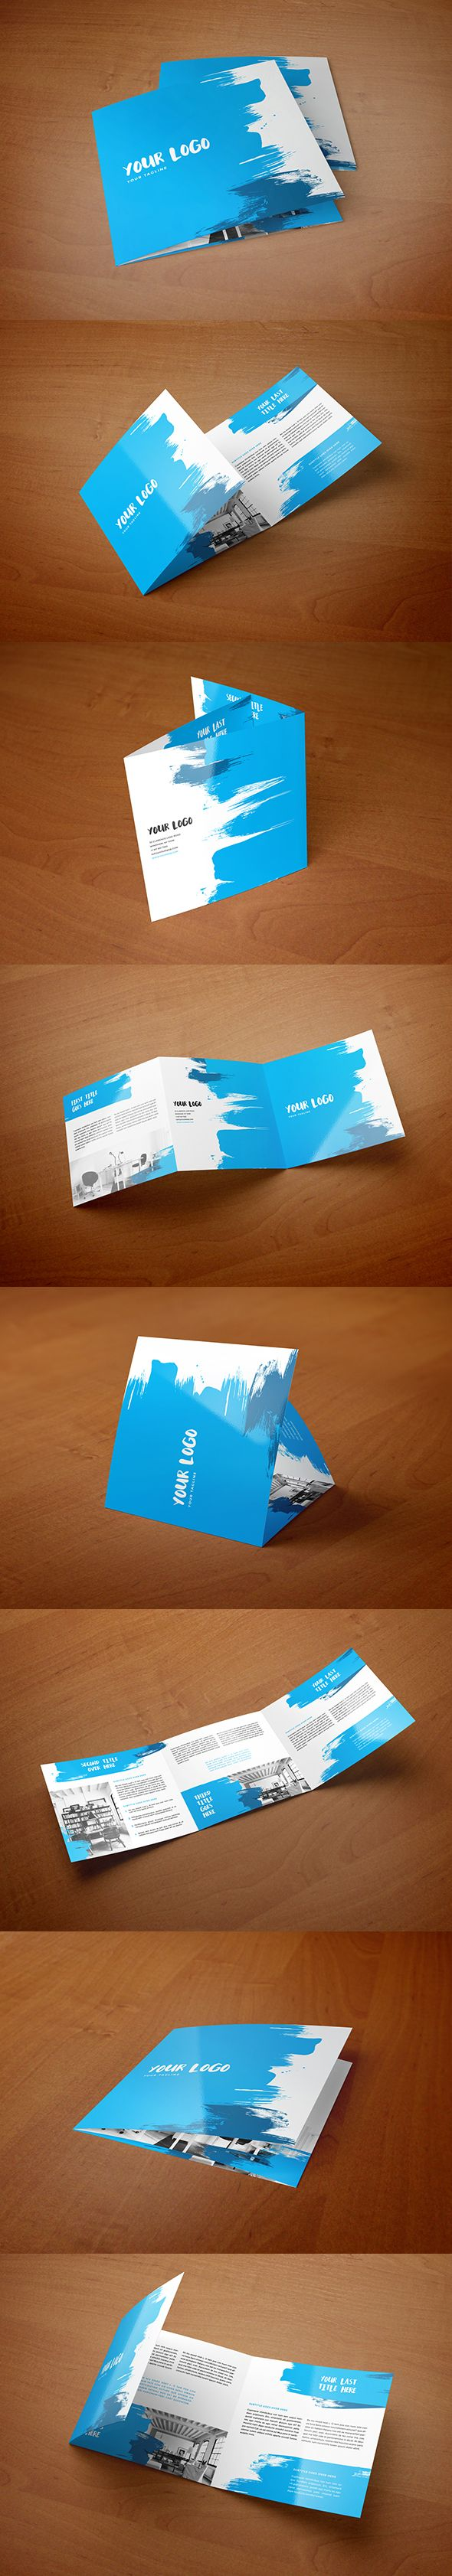 Square Cool Paint Trifold. Download here: http://graphicriver.net/item/square-cool-paint-trifold/12692656?ref=abradesign